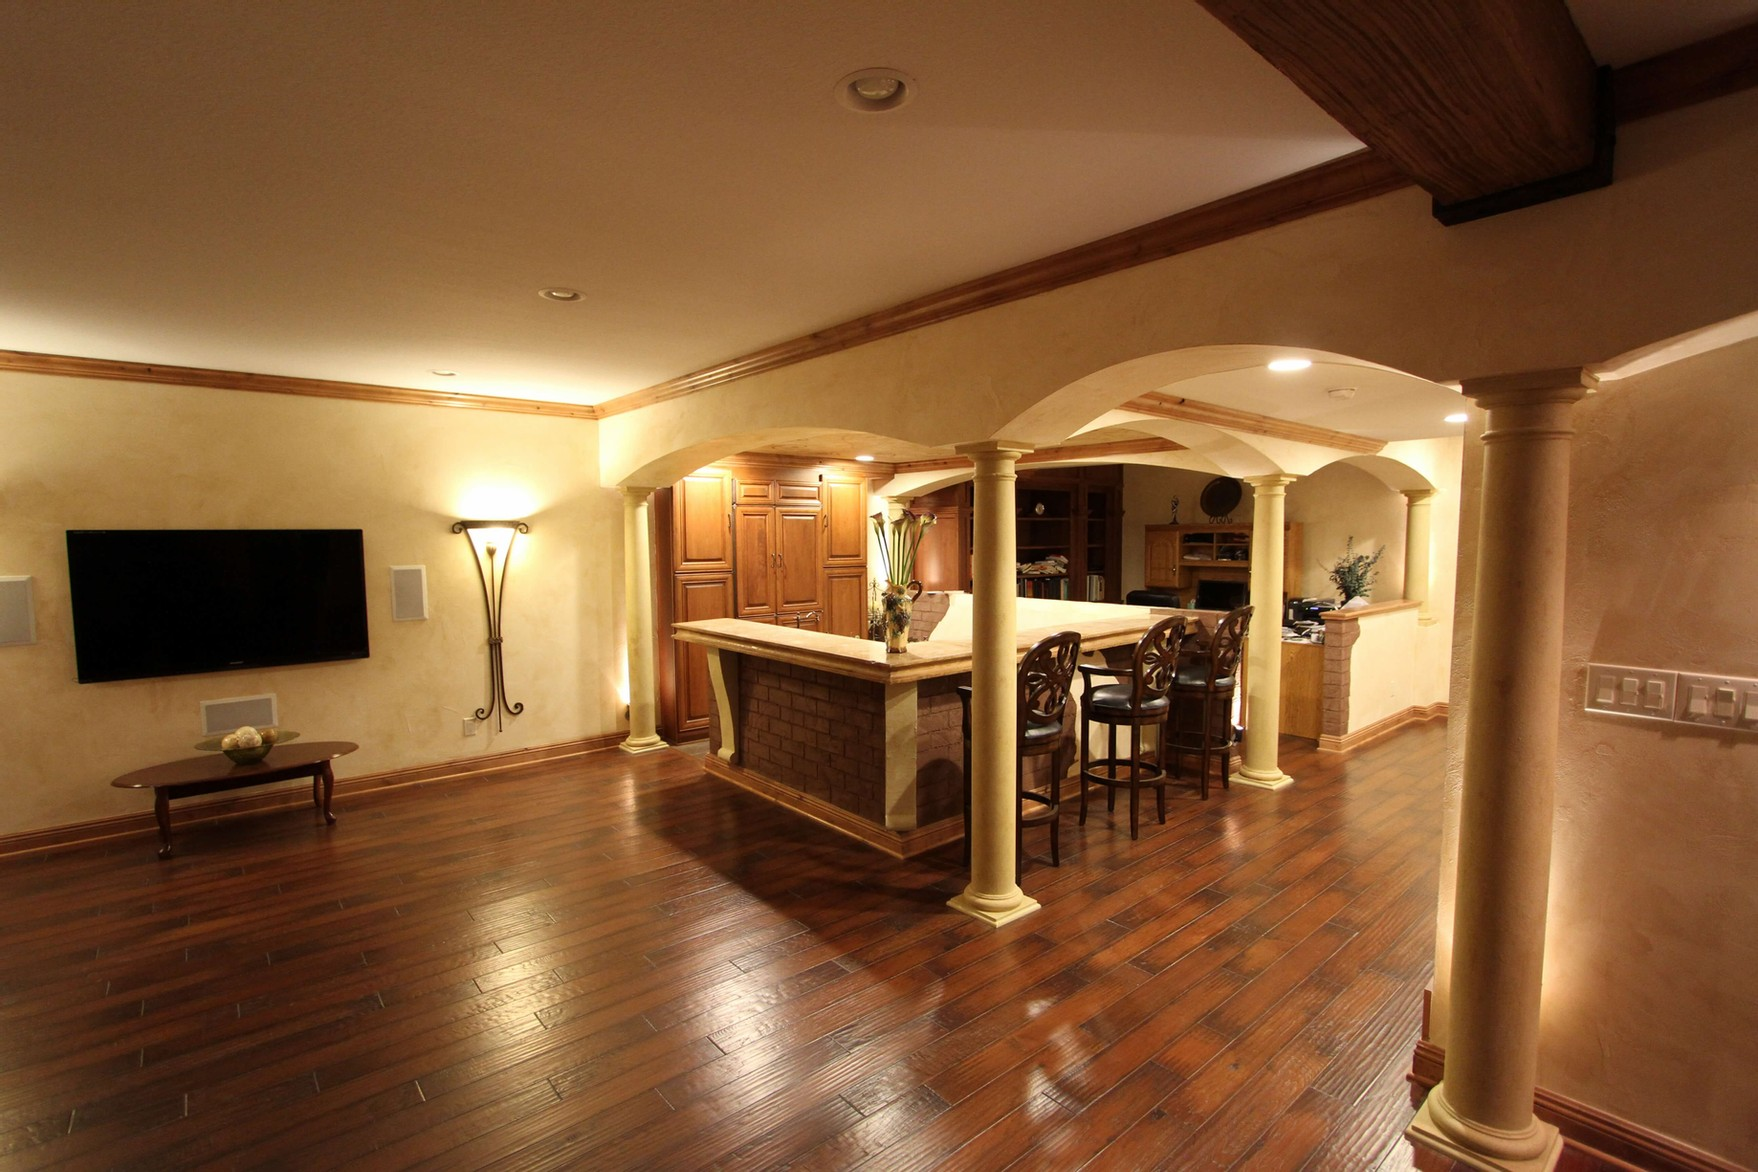 Basement remodel in West Des Moines